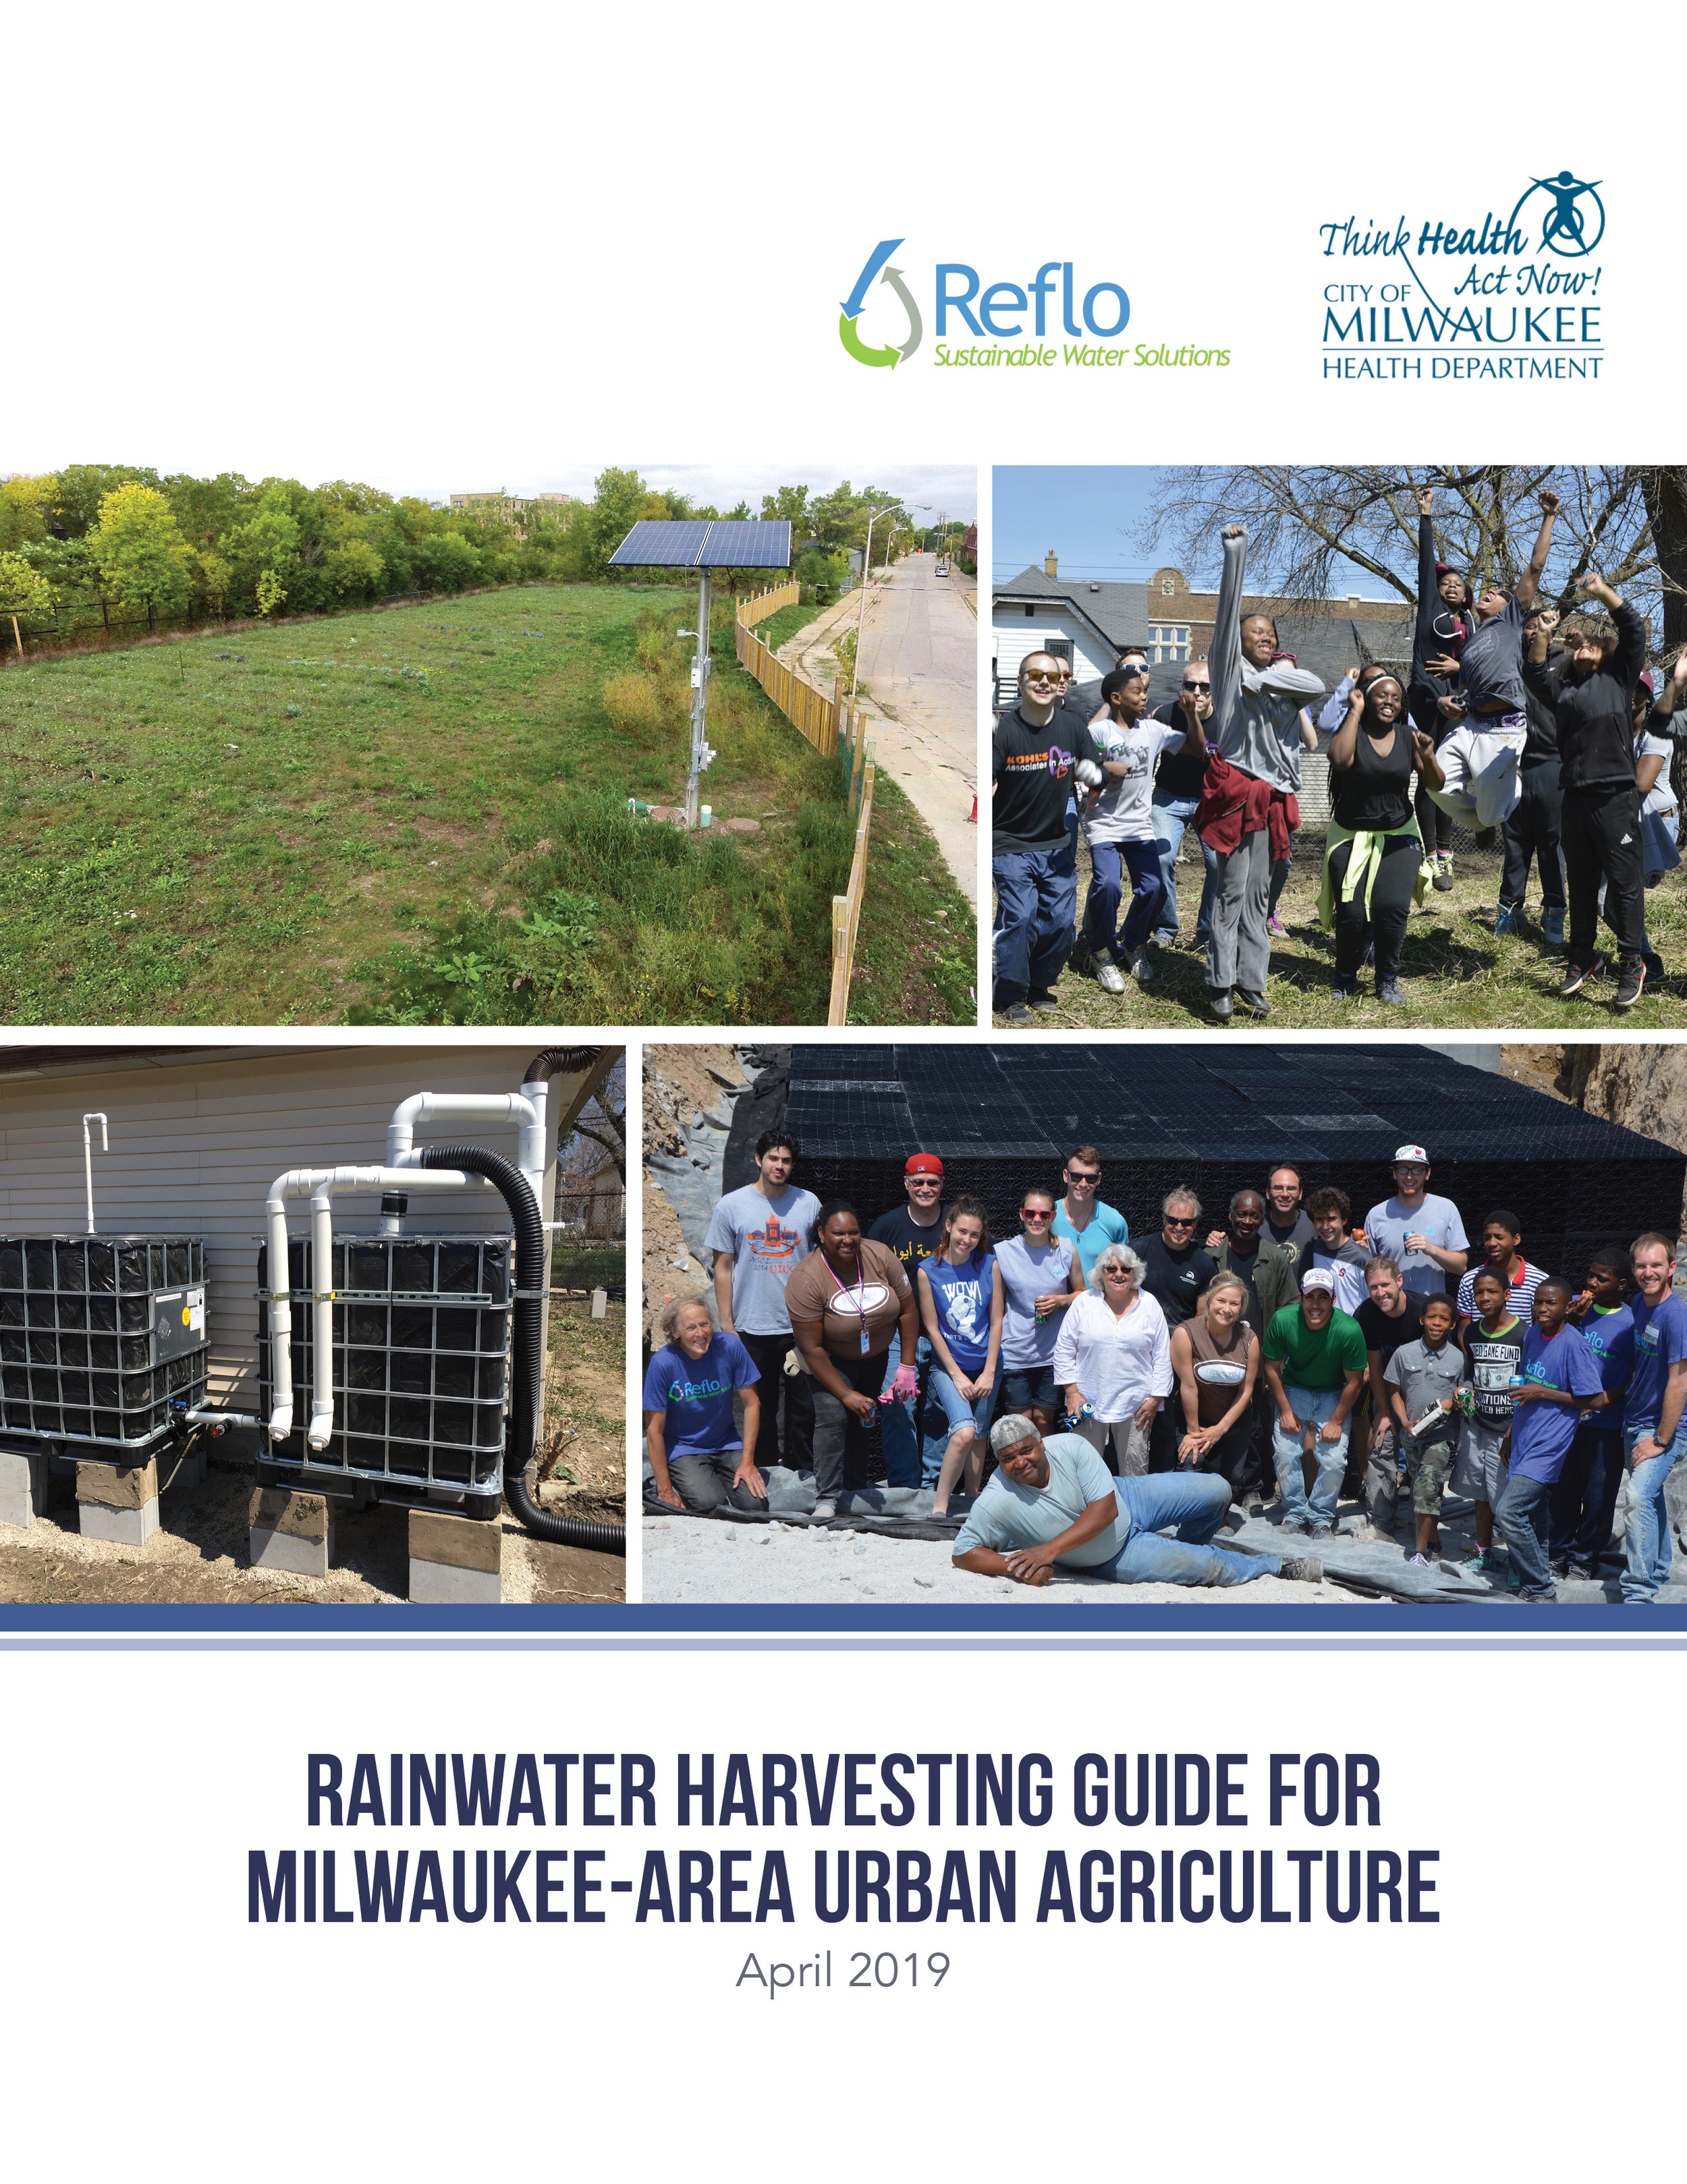 Download a copy of theRainwater Harvesting Guide - Reflo partnered with the Milwaukee Health Department to help communicate the impacts of climate change on human and environmental health. As a part of that work, rainwater harvesting was identified as an important climate change adaptation strategy. The proceeding guidebook was produced to help Milwaukee-area urban gardeners and farmers learn how they can make use of an alternative and low cost water source while also help to manage stormwater by capturing rain where it falls through green infrastructure.